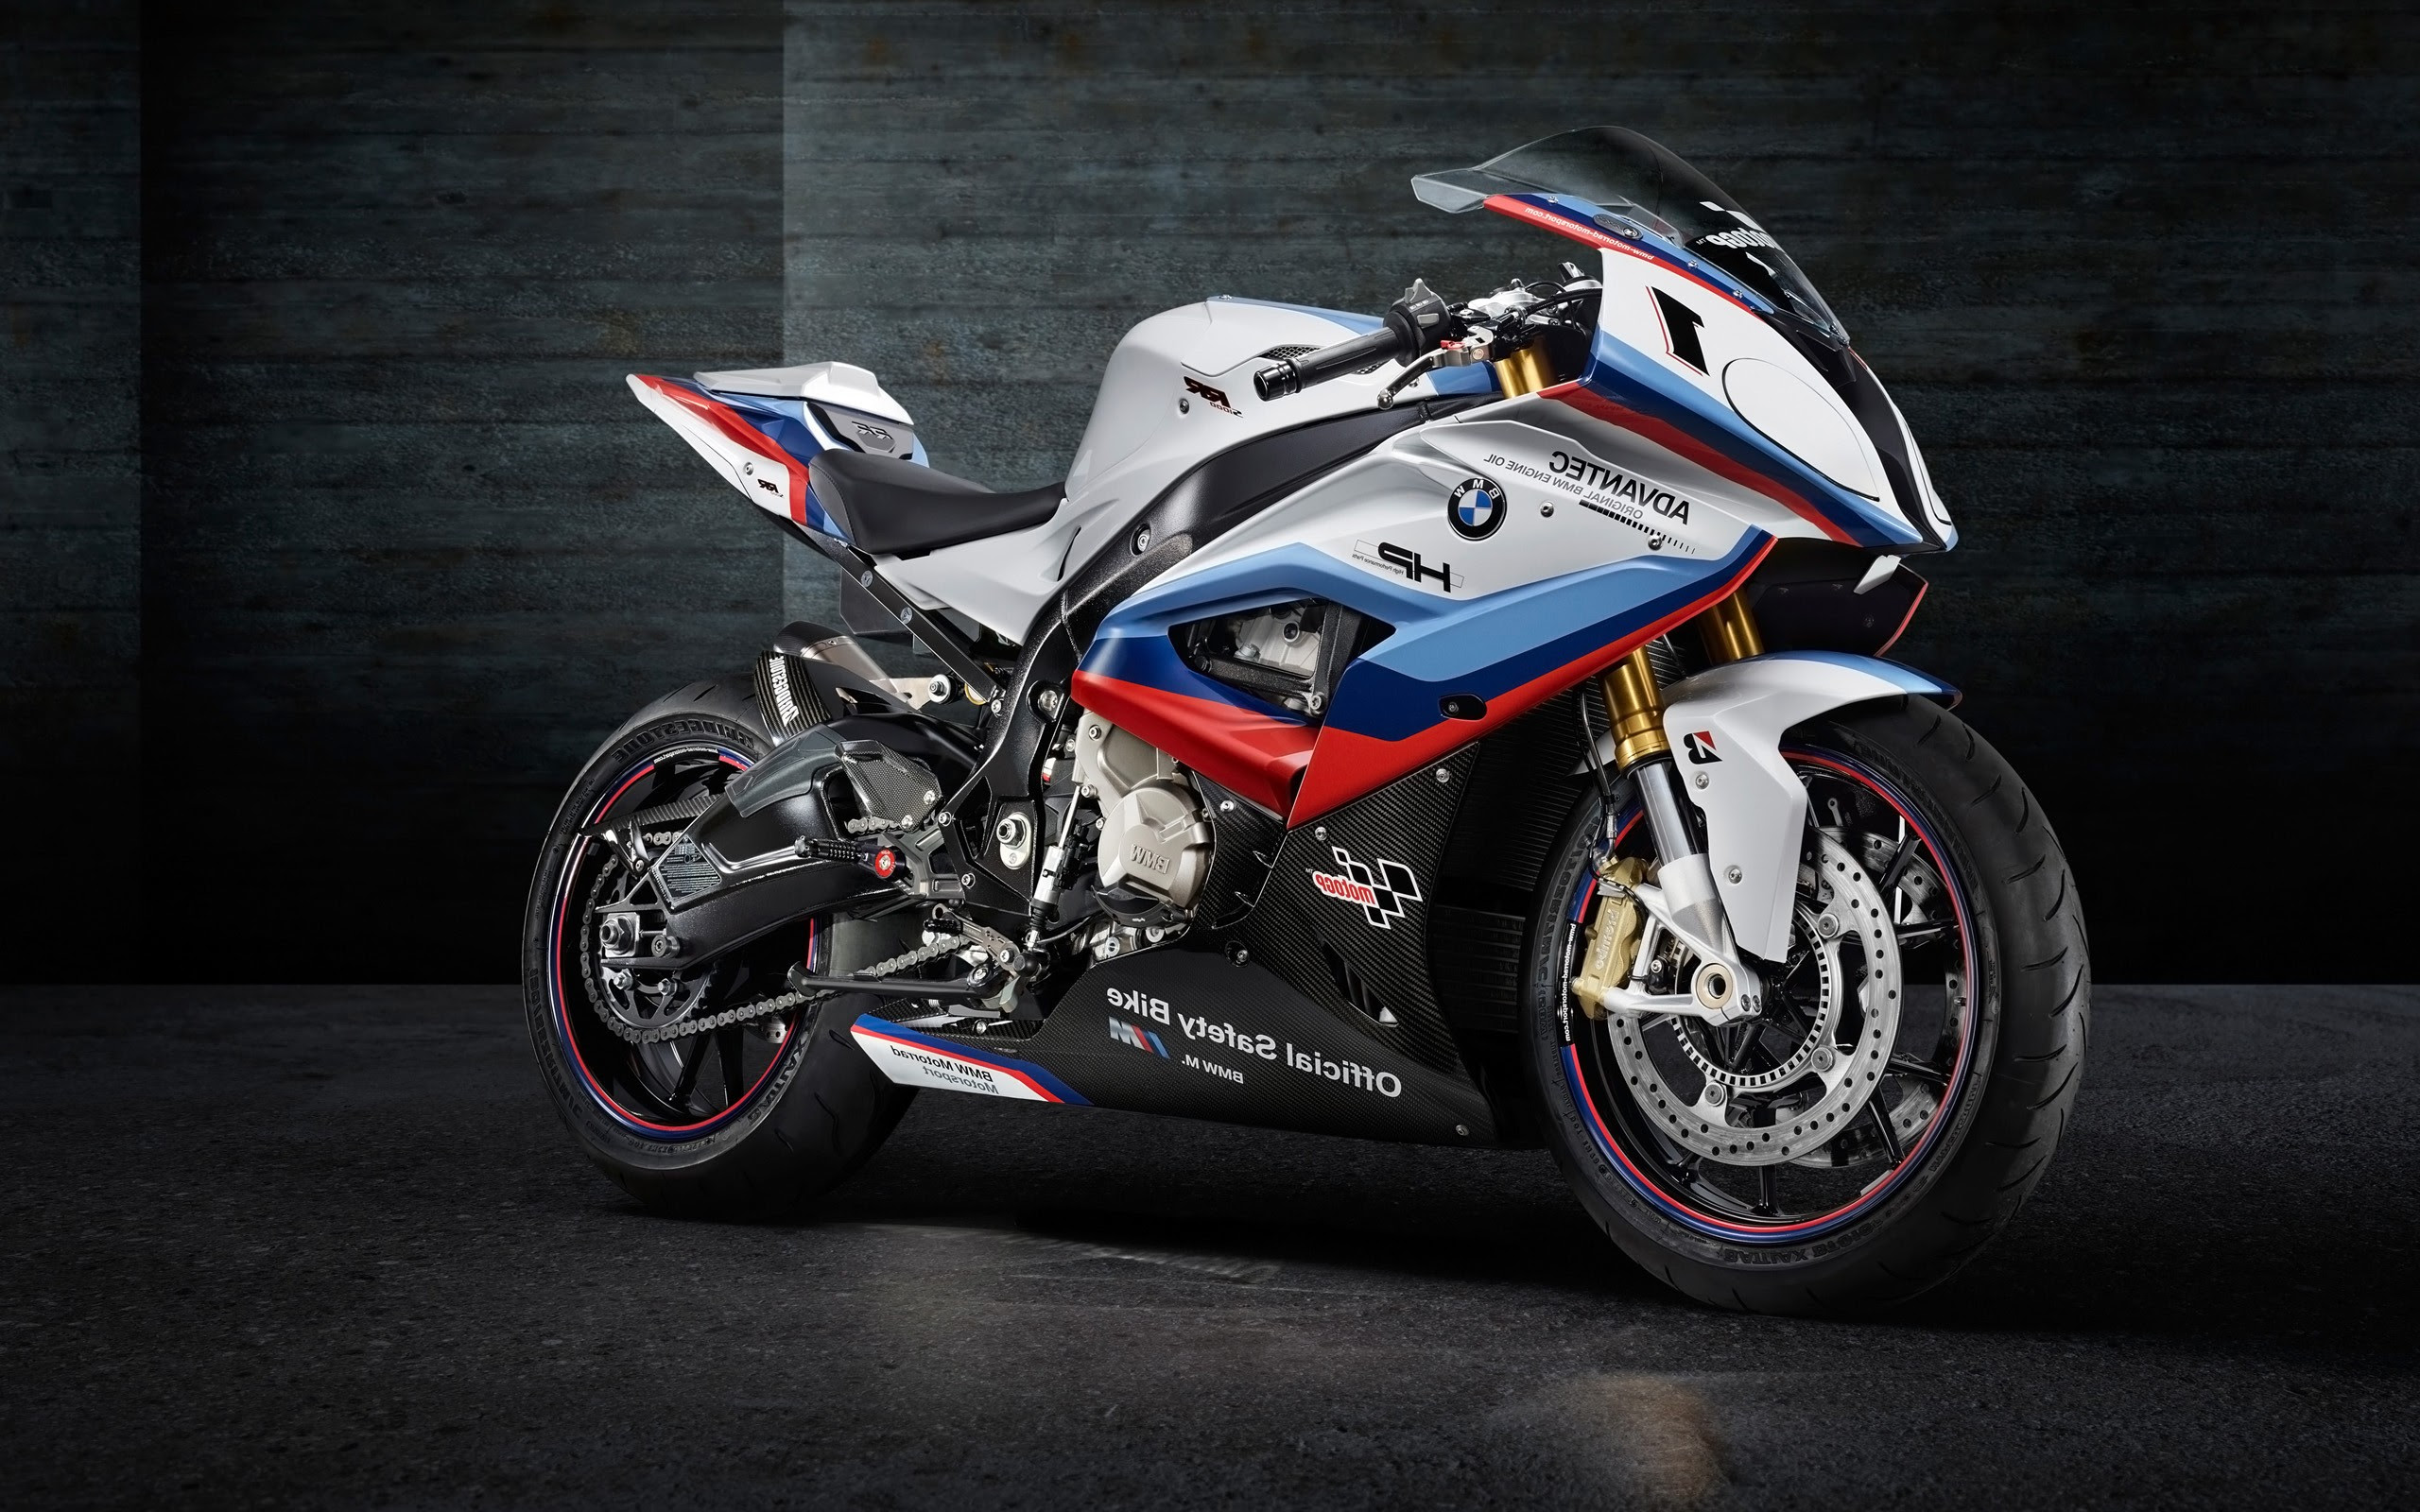 BMW M4 MotoGP Safety Bike, HD Bikes, 4k Wallpapers, Images, Backgrounds, Photos and Pictures